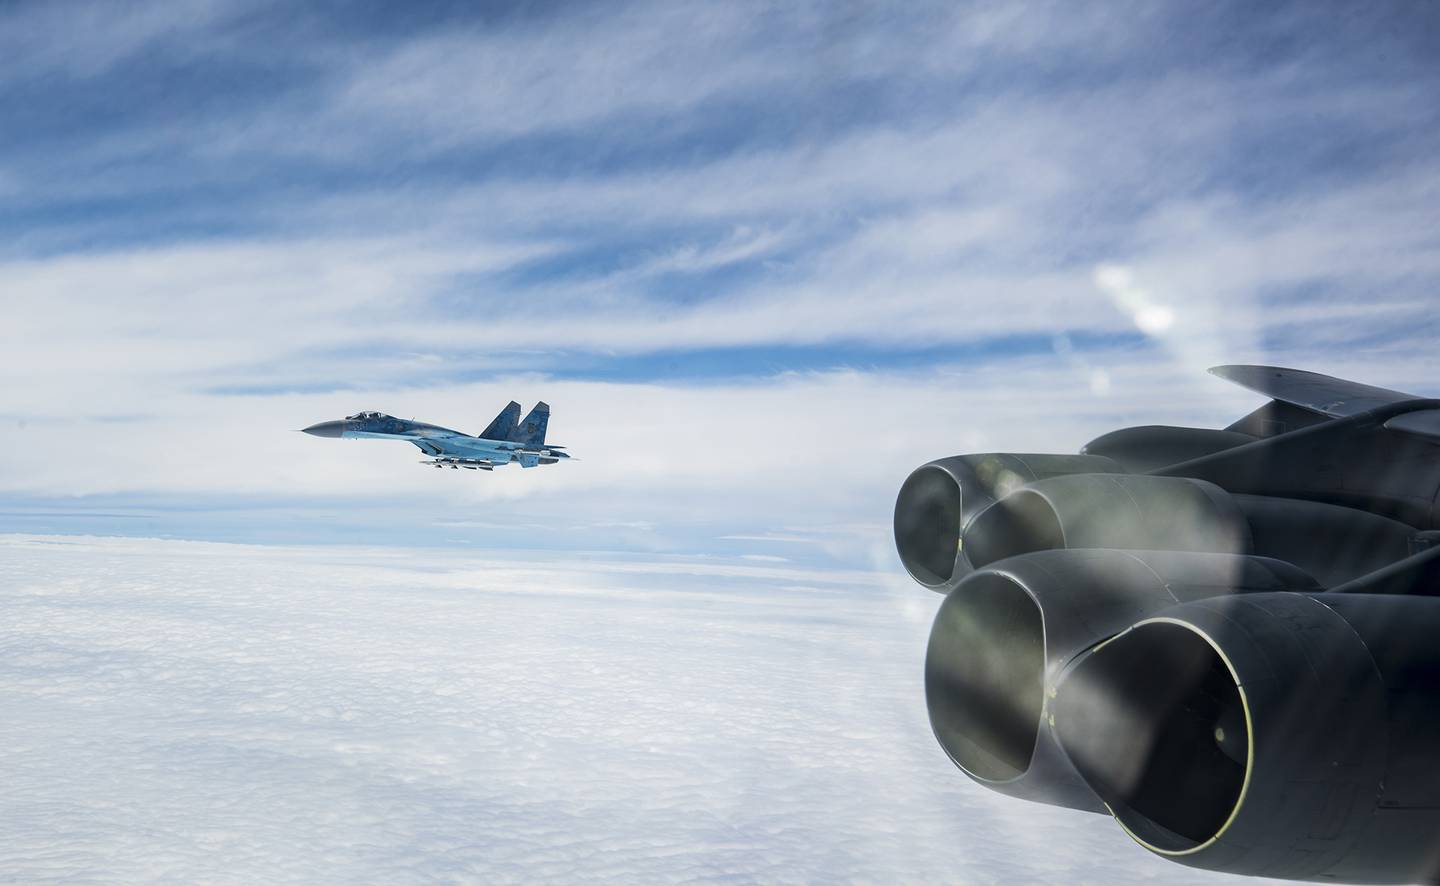 A Ukraine SU-27 integrates with a U.S. B-52H Stratofortress during a Bomber Task Force Europe mission, Sept. 4, 2020.